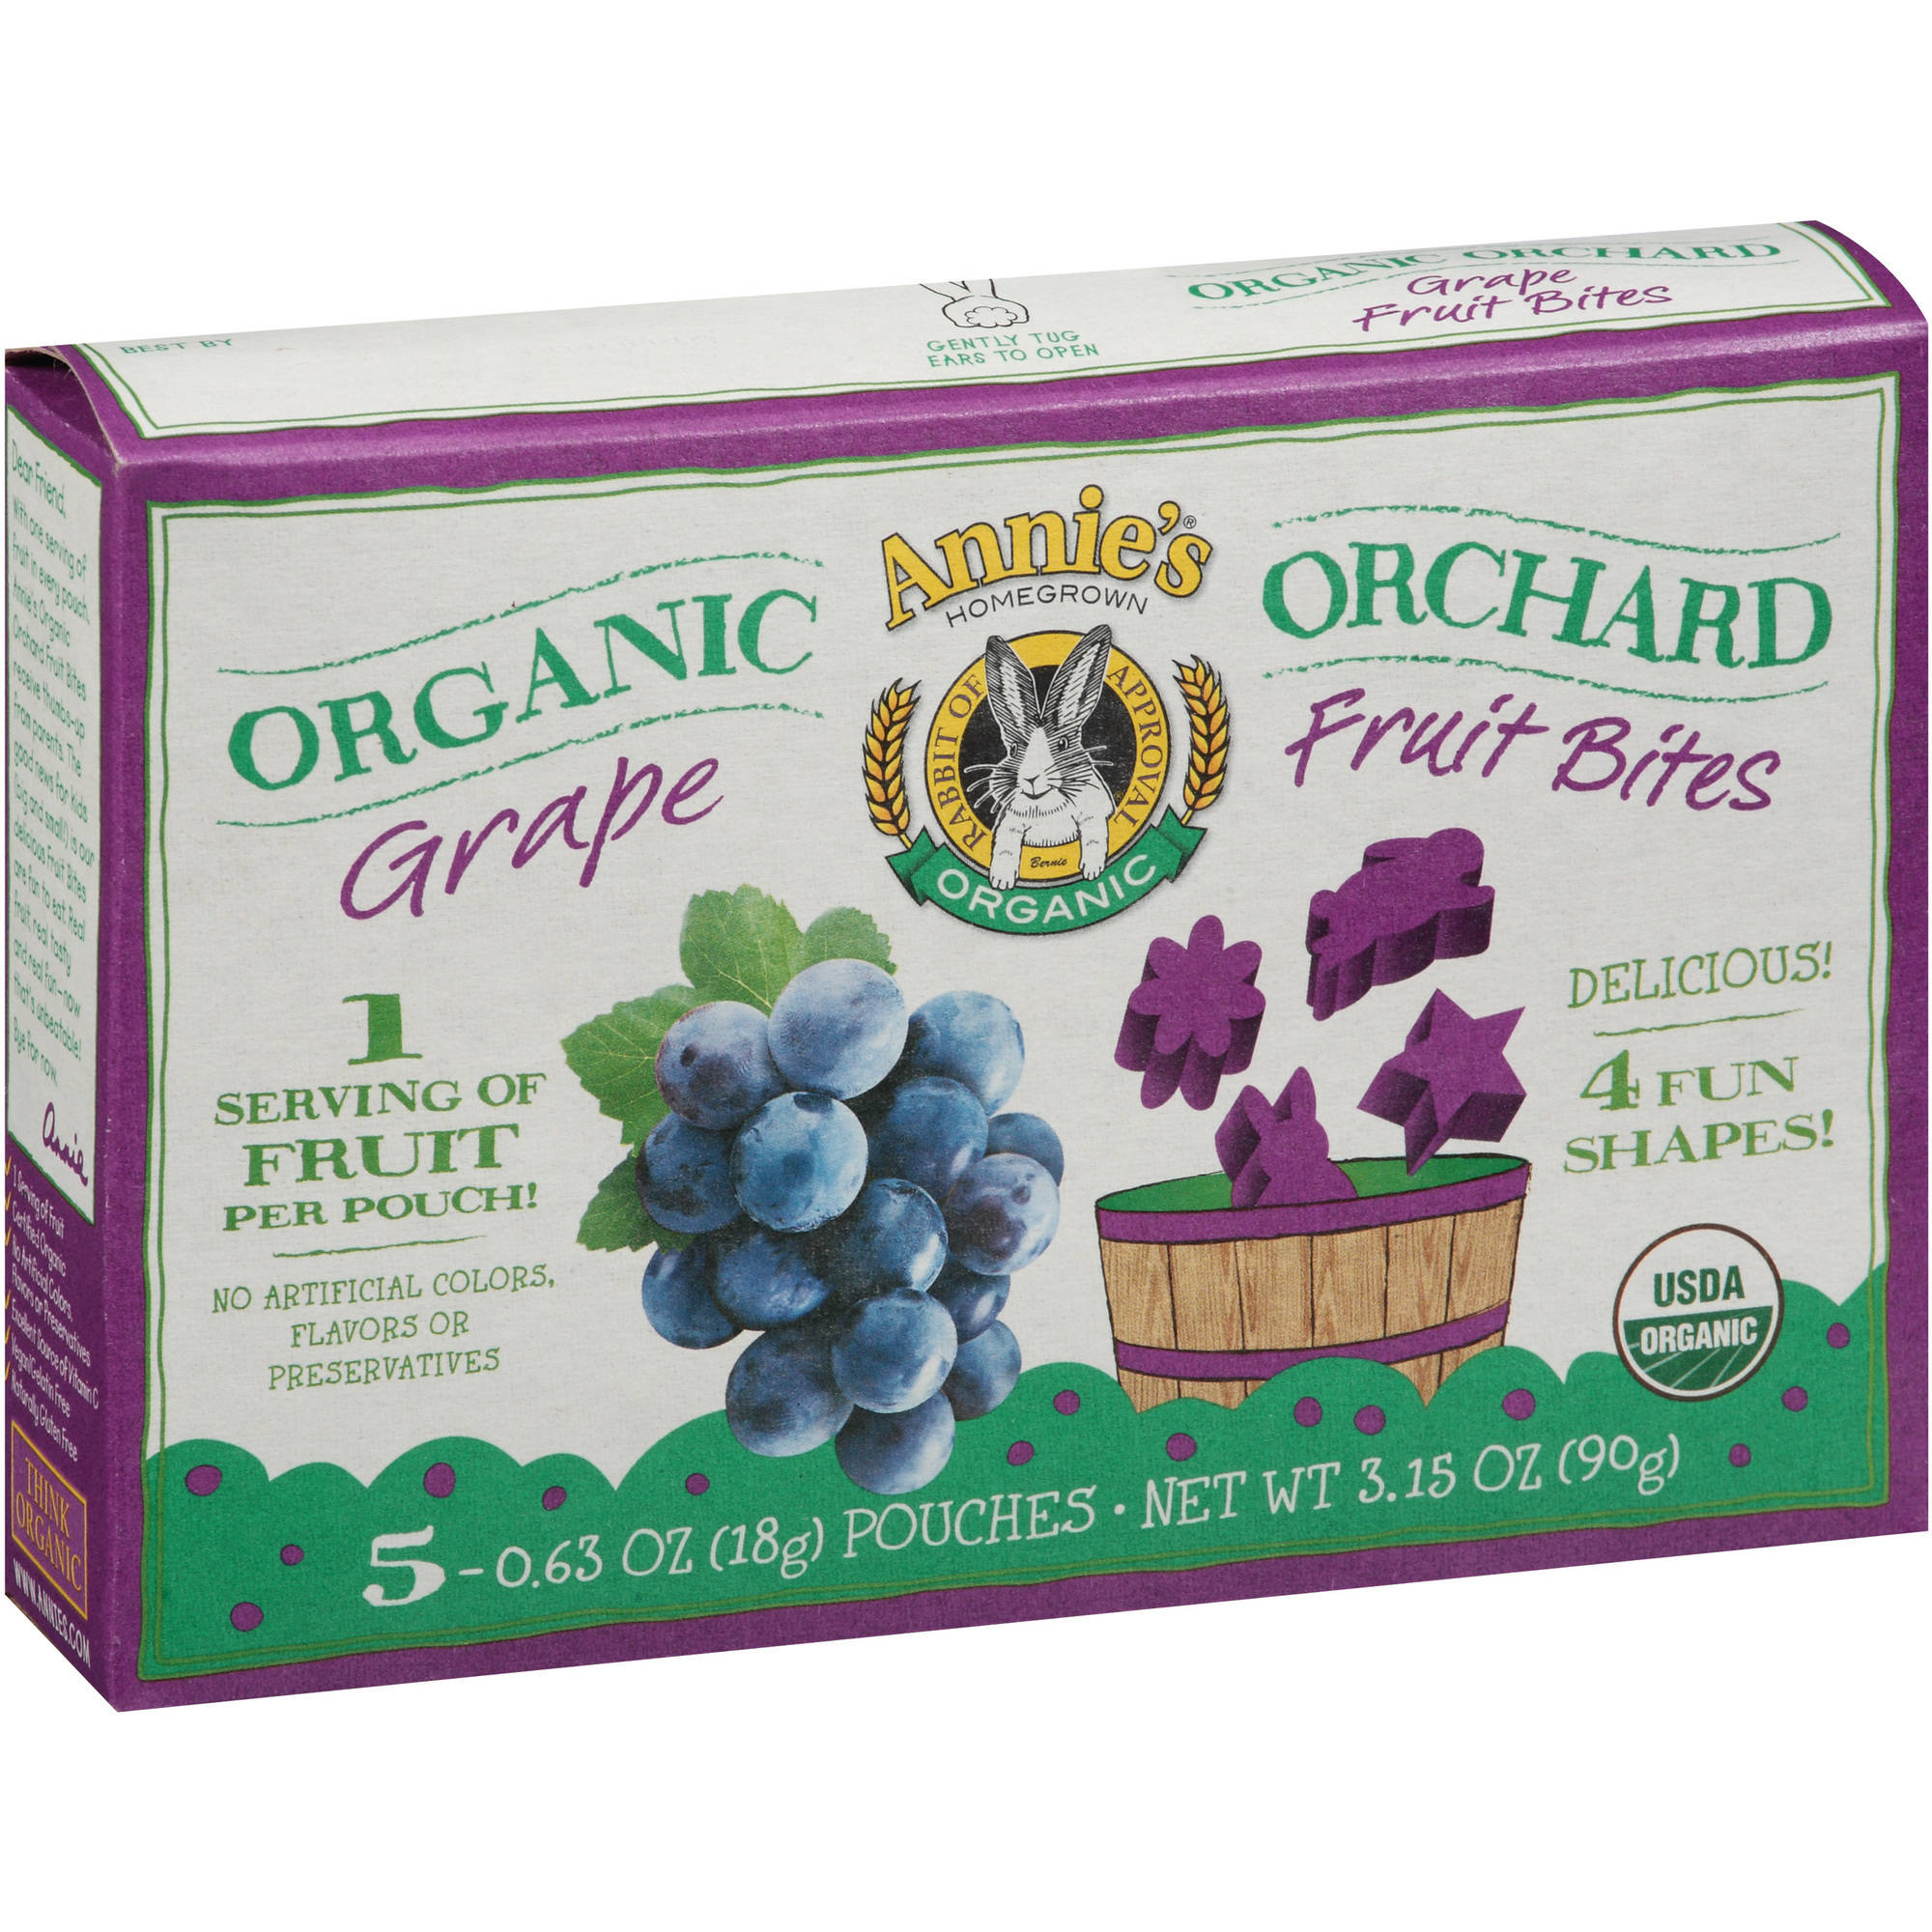 Annie's Homegrown Organic Orchard Grape Fruit Bites, 0.63 oz, 5 count